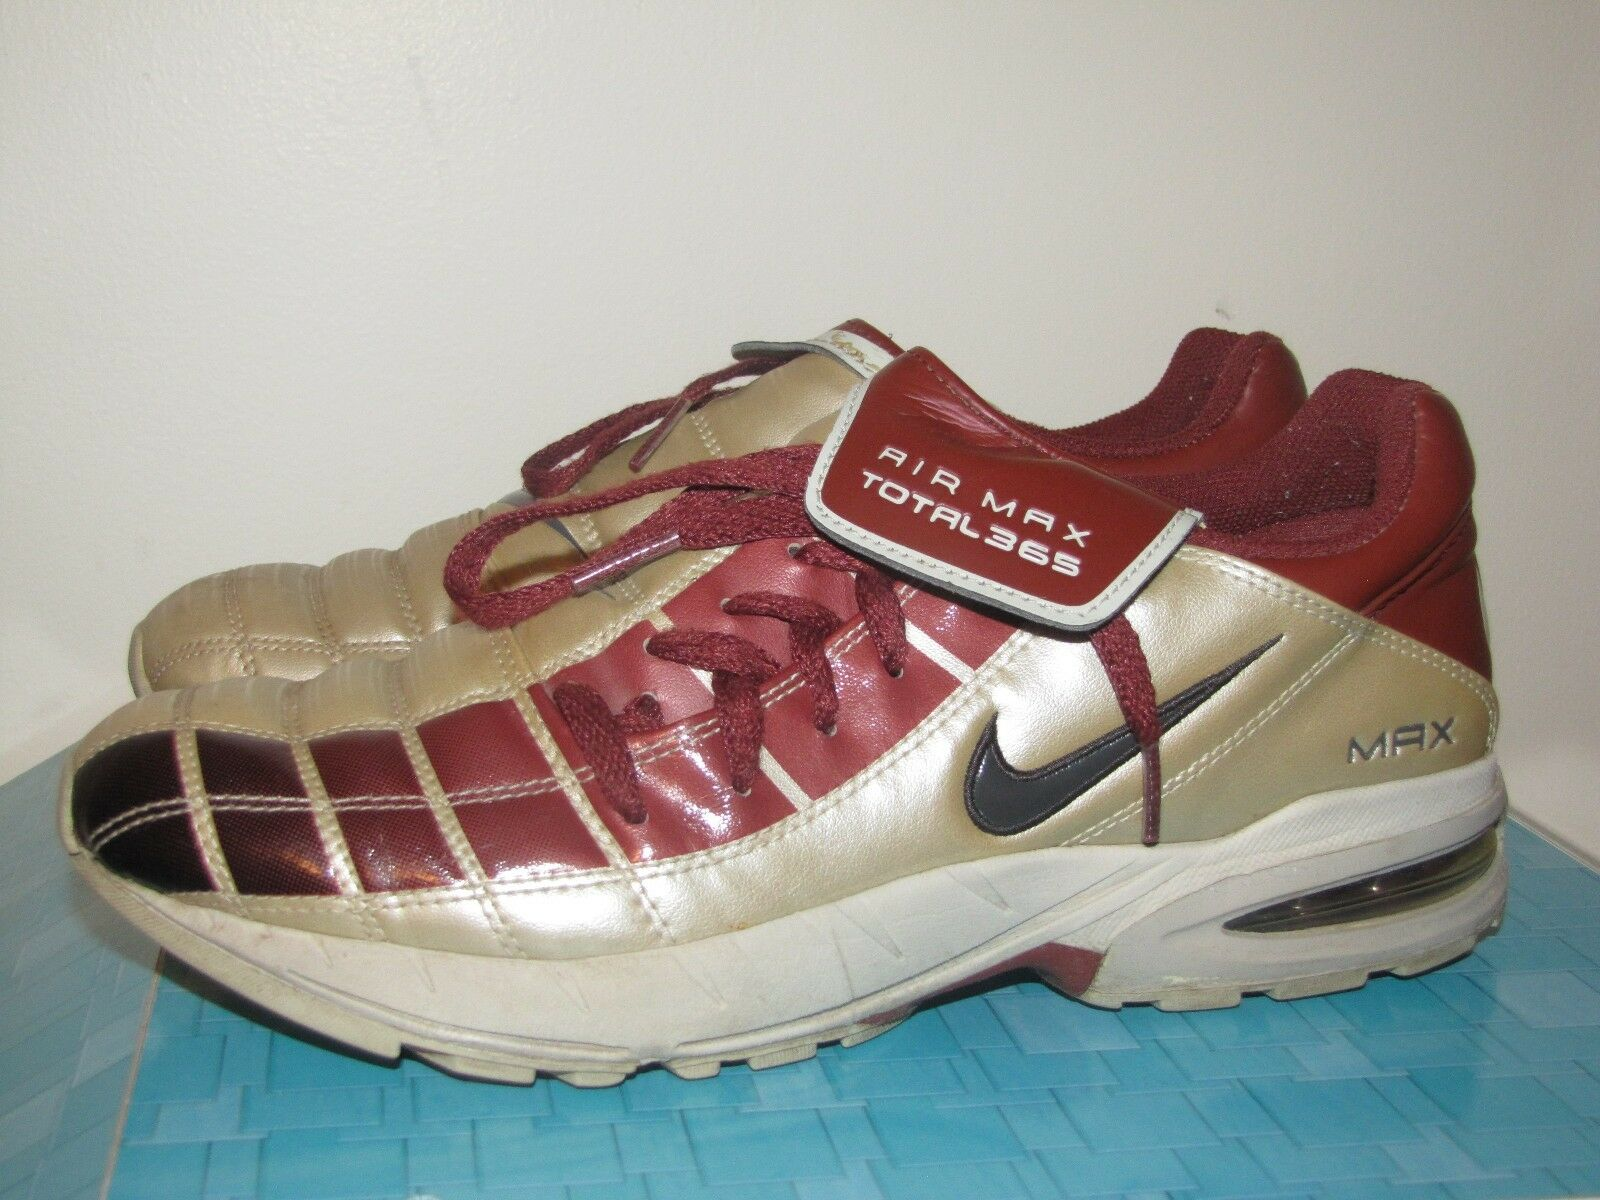 NIKE SHOX MAX AIR ZOOM 365 SOCCER CLEATS SHOES INDOOR TRAINERS US 8